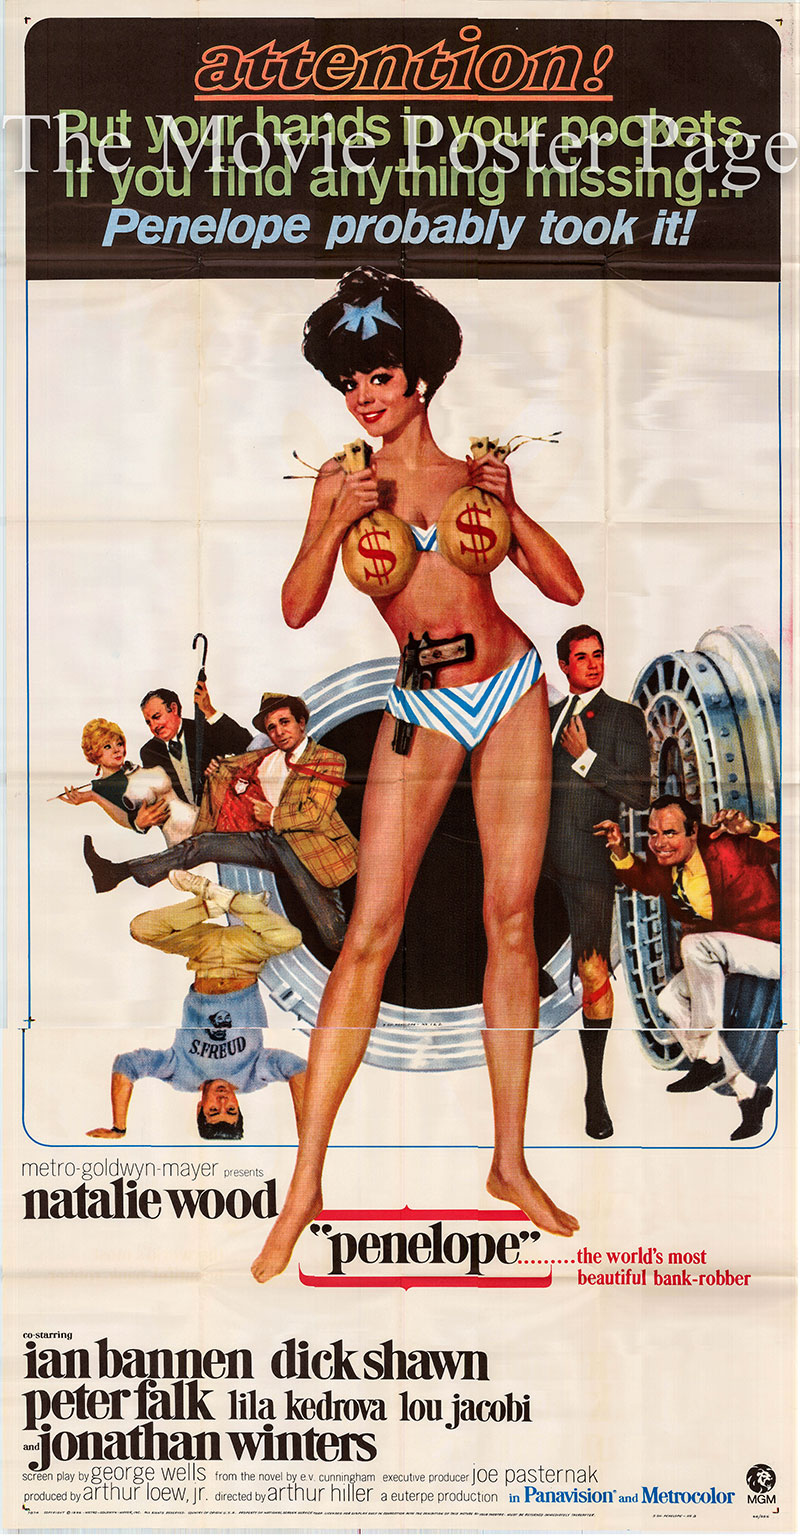 Pictured is a US three-sheet poster for the 1966 Arthur Hiller film Penelope starring Natalie Wood.